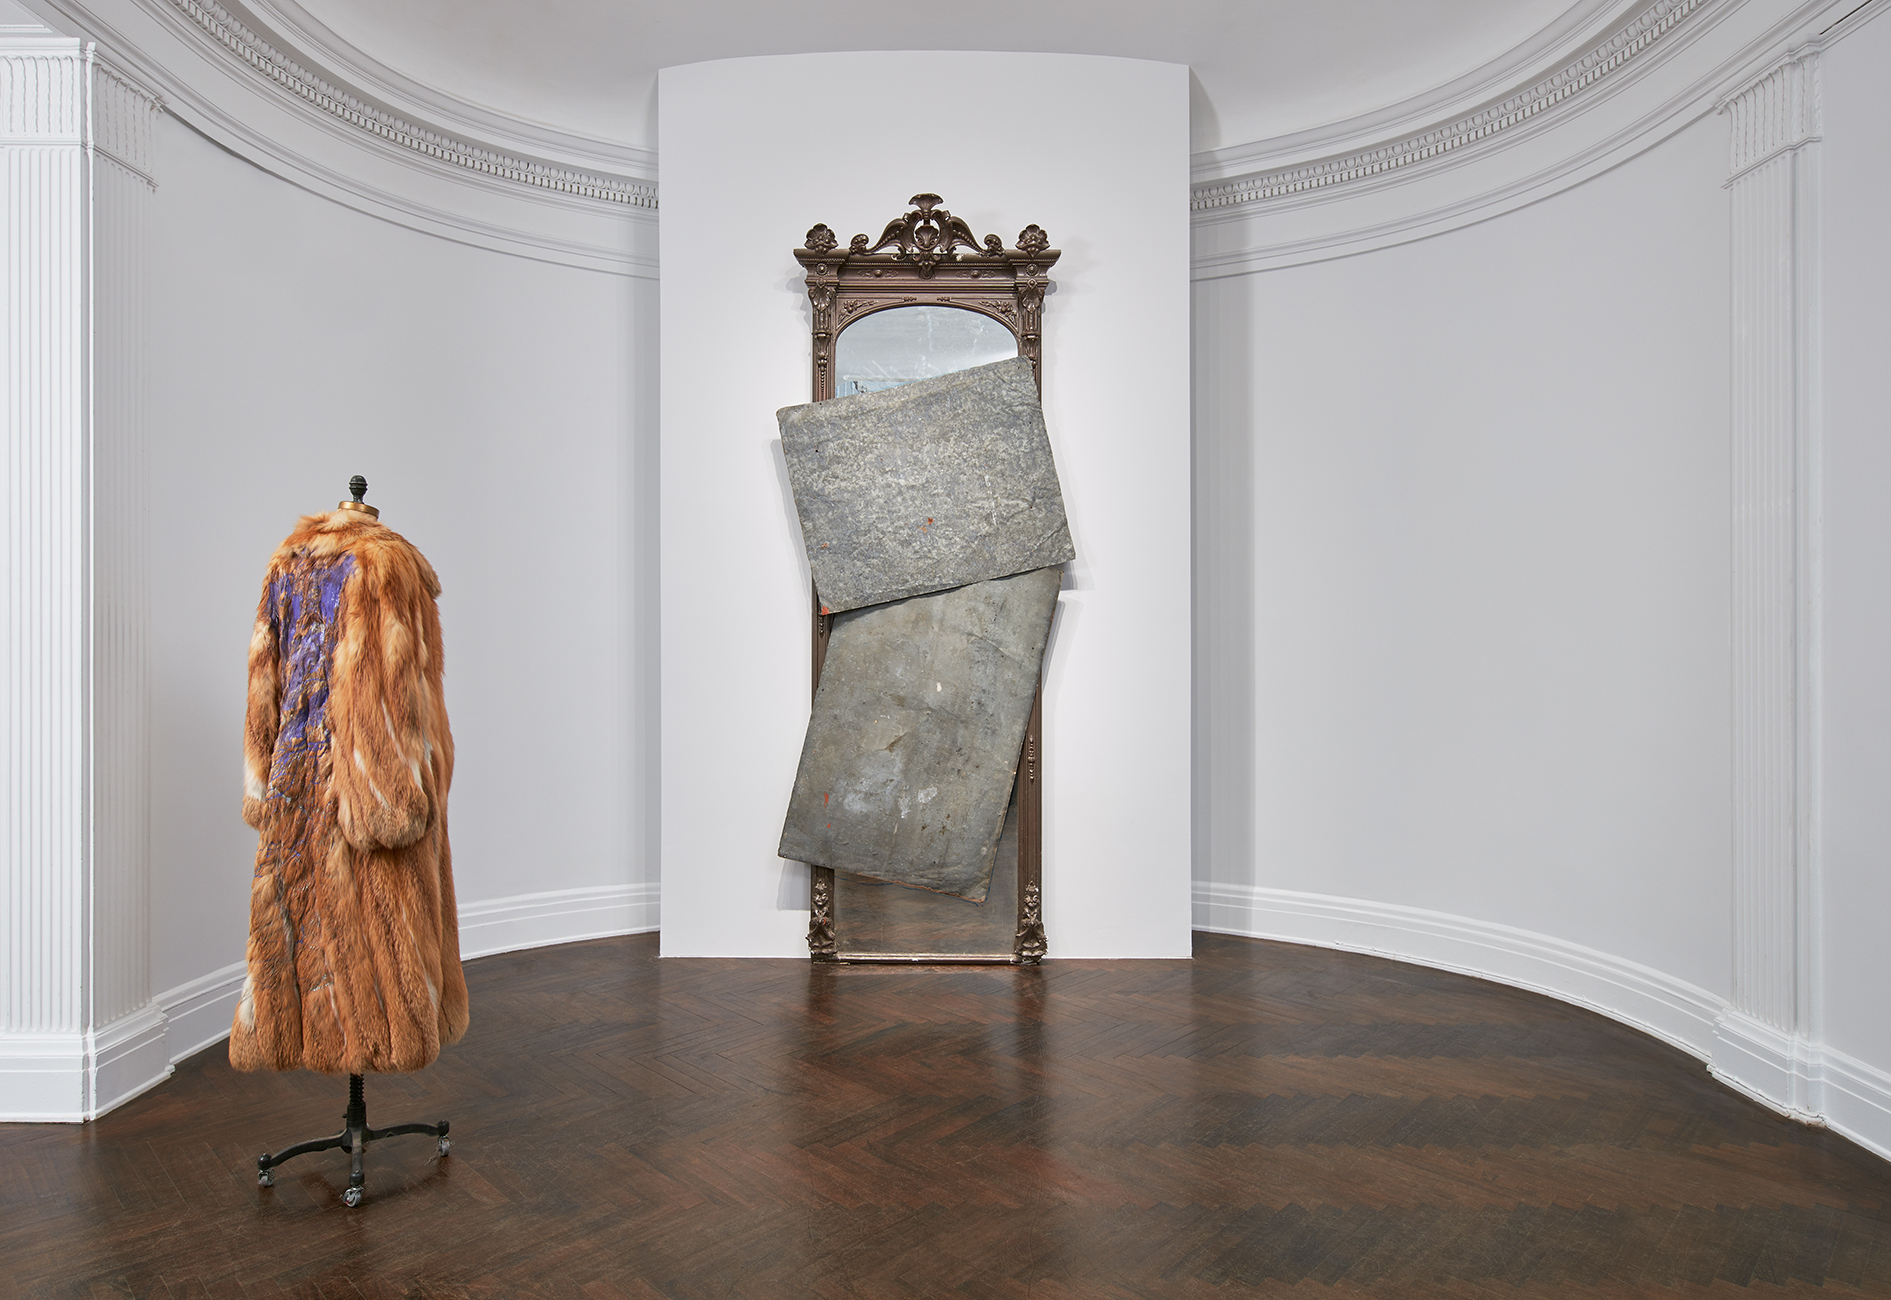 Installation view of David Hammons at Mnuchin Gallery. Courtesy Mnuchin Gallery. Art (c) David Hammons. Photo Tom Powel Imaging.